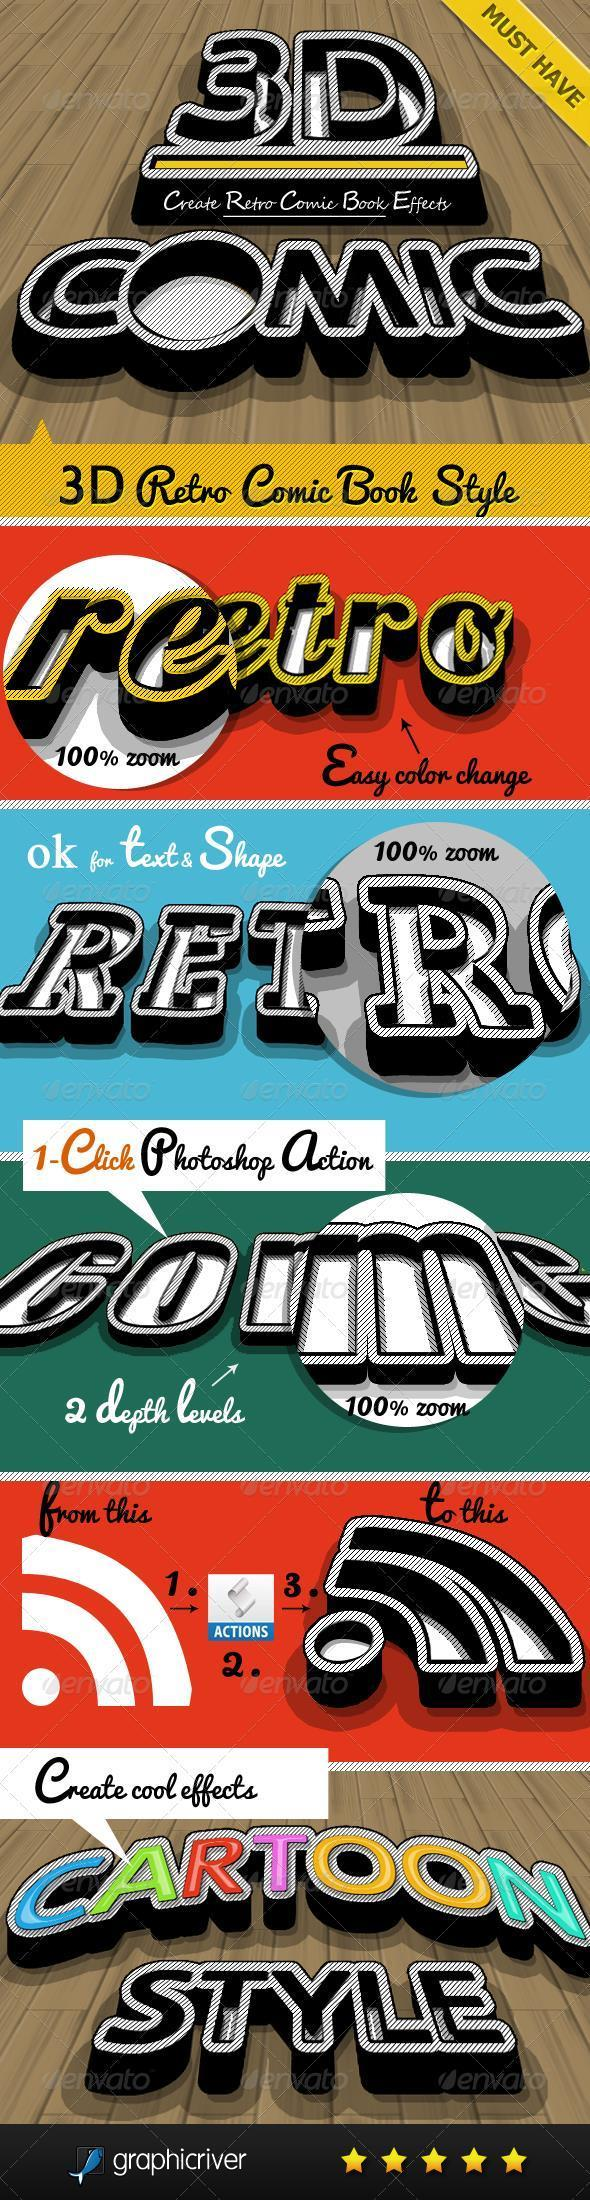 3D Retro Comic Book Photoshop Text Styles